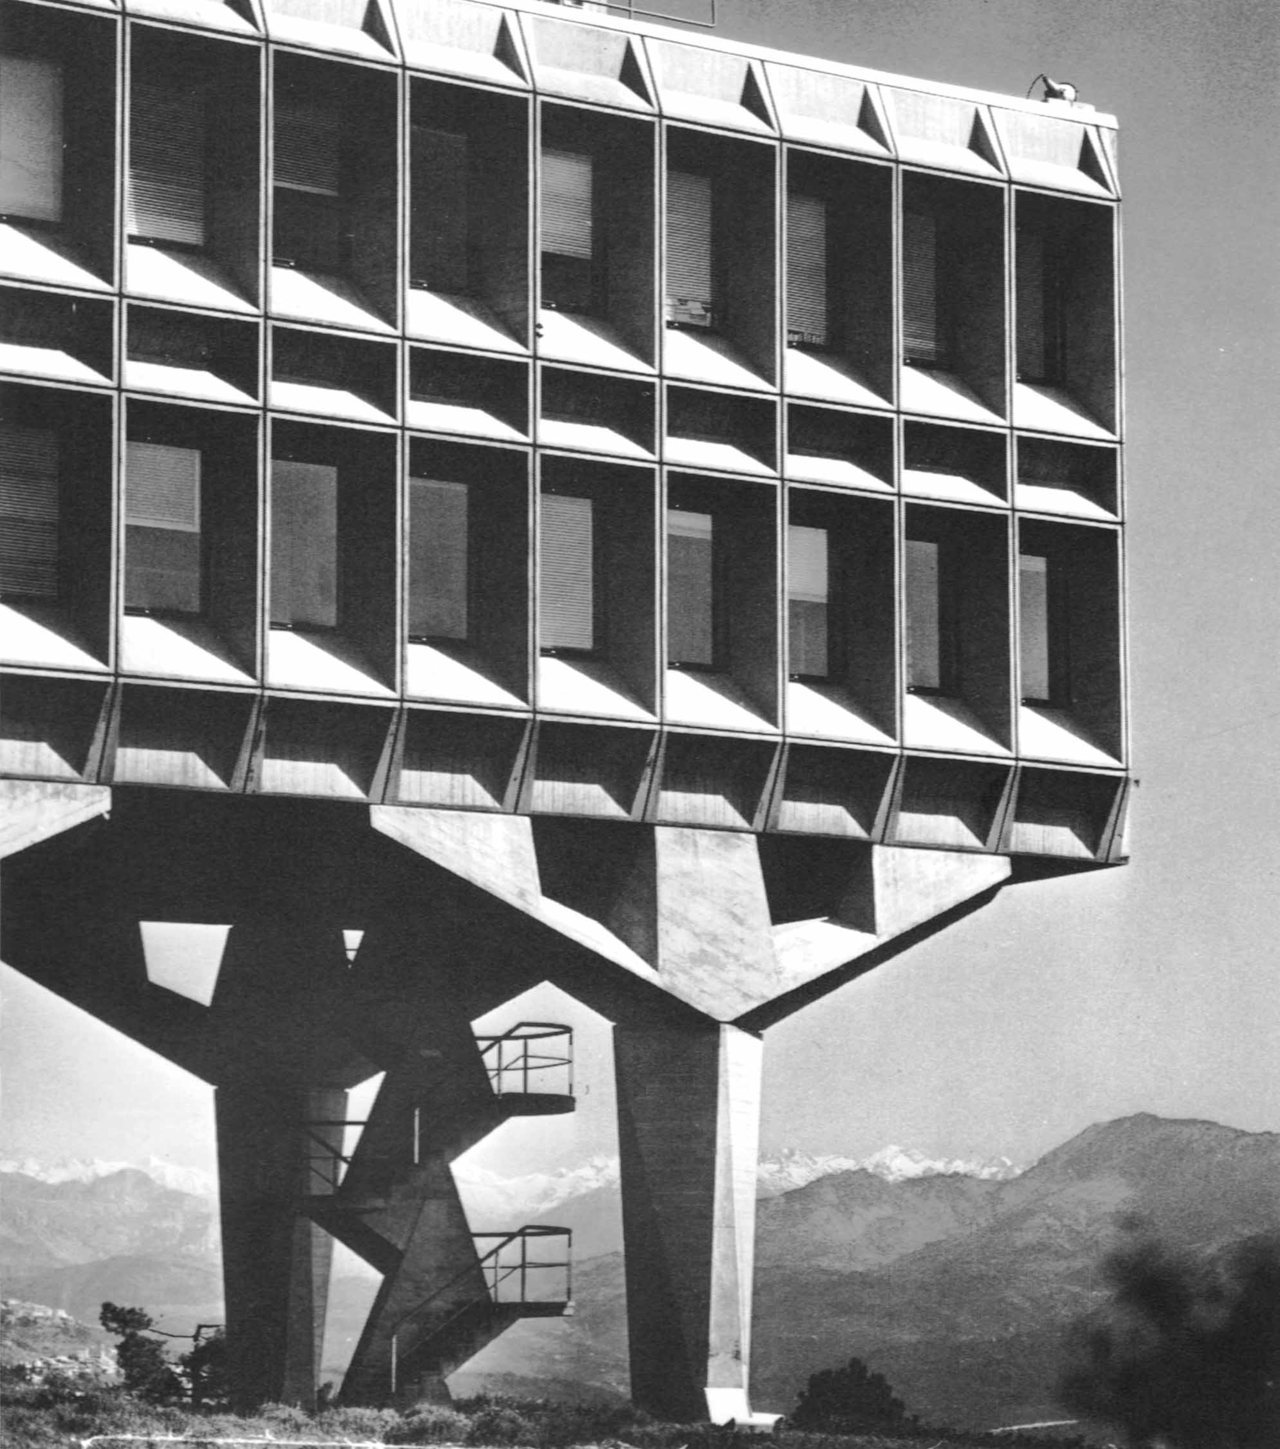 IBM France Research Center, La Gaude, France, 1958-62, by Marcel Breuer & Associates.